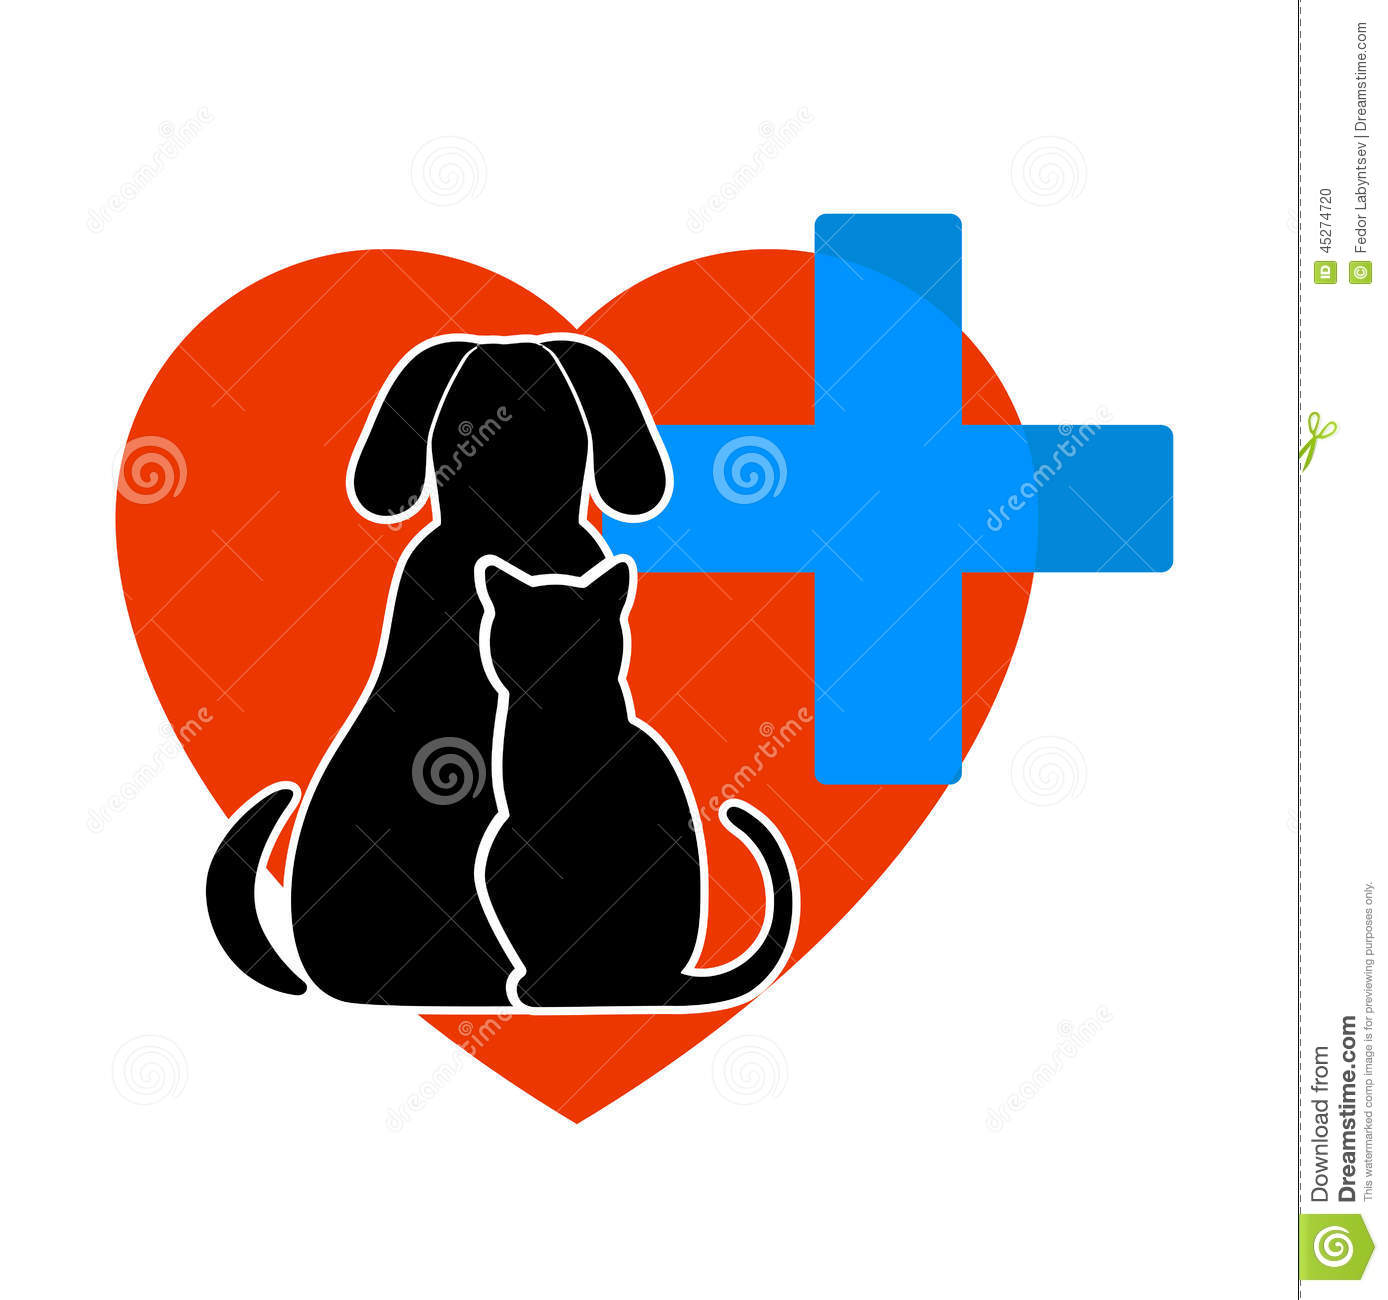 Dog, Cat On Veterinary Medicine Symbol Royalty Free Stock Images.